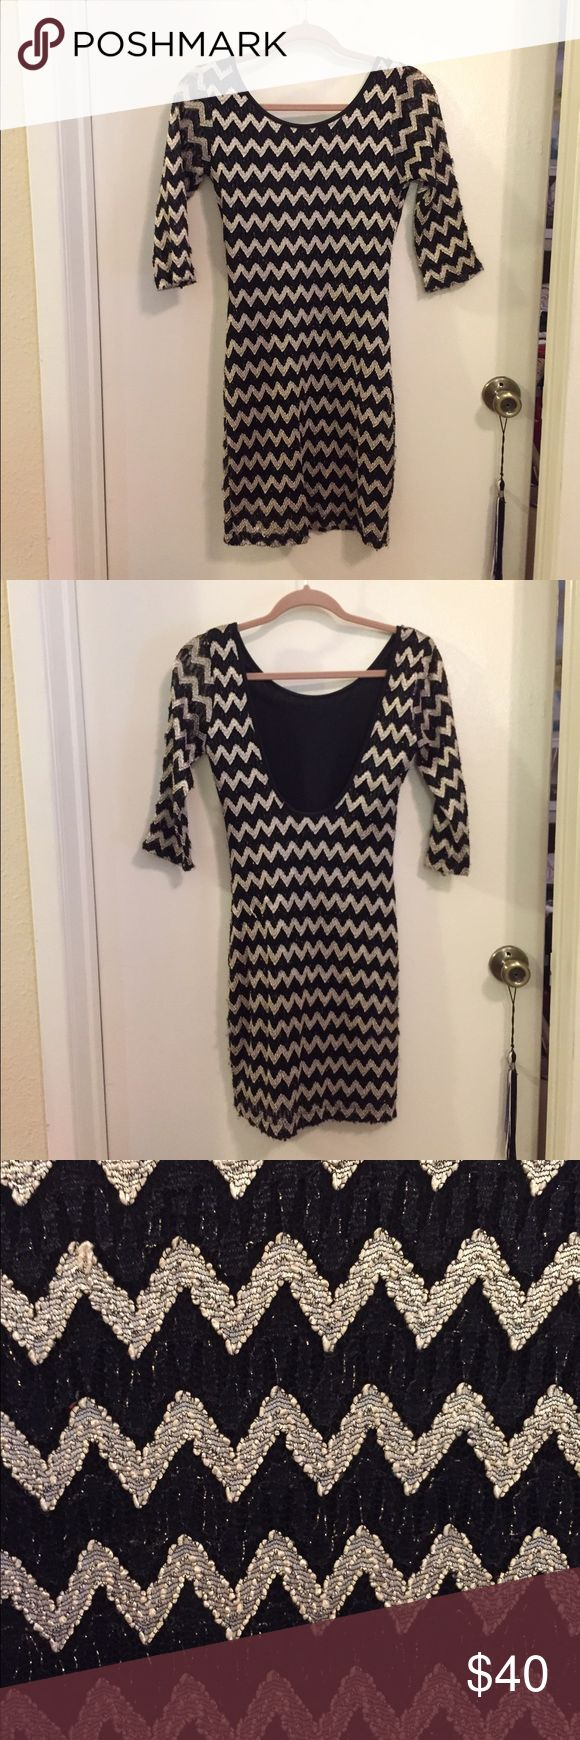 Gold foil, chevron pattern bodycon dress. Gold foil, chevron pattern bodycon dress with sheer sleeves, so the sleeves are partly see through. Stretchy material. Dresses